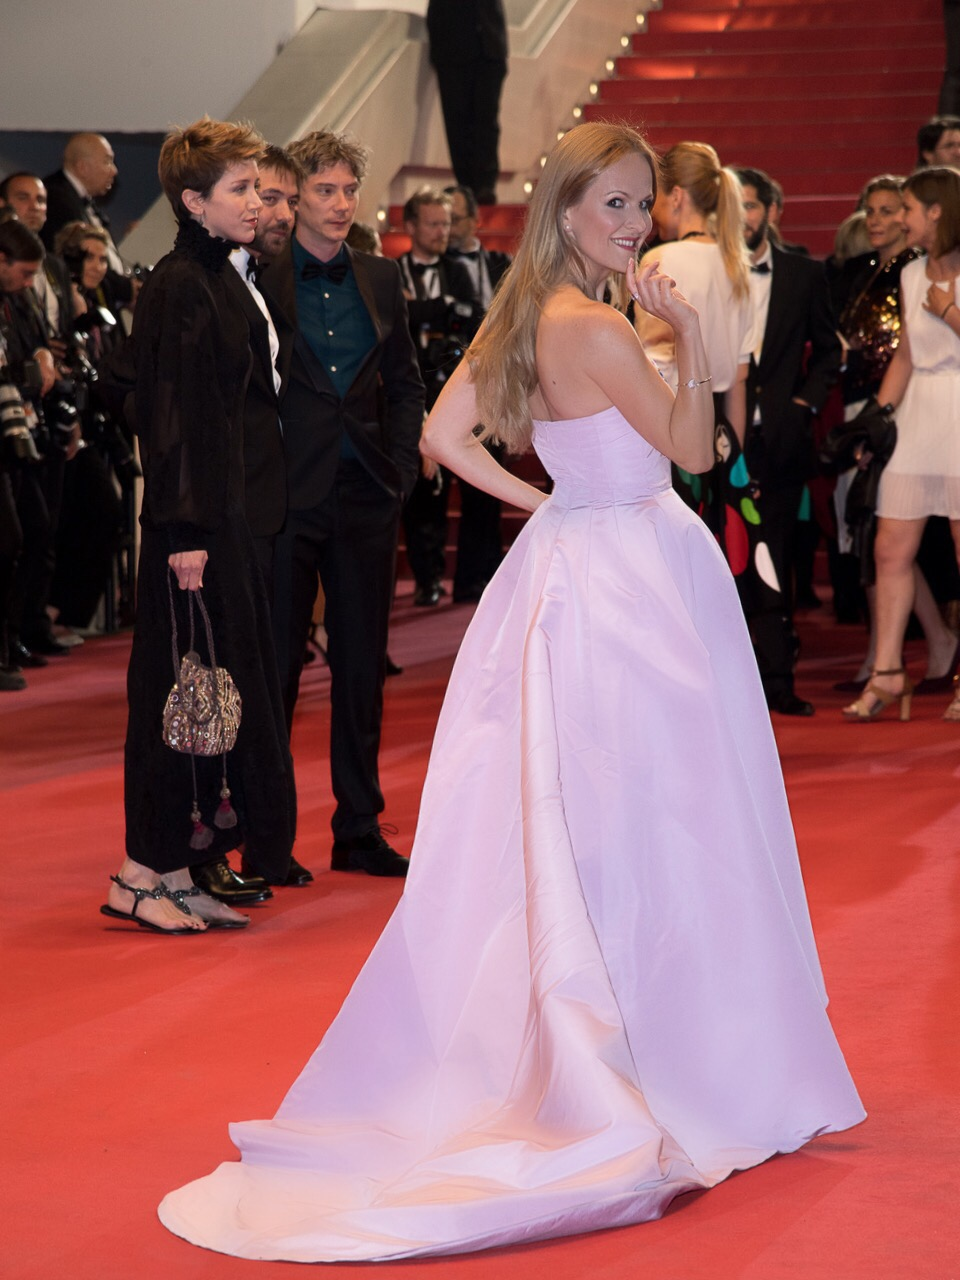 Nel-Olivia Waga attends the Premiere of La Redoute during Cannes Film Festival. Red Carpet/Montee des Marches. Photo Credit: PPress Photography